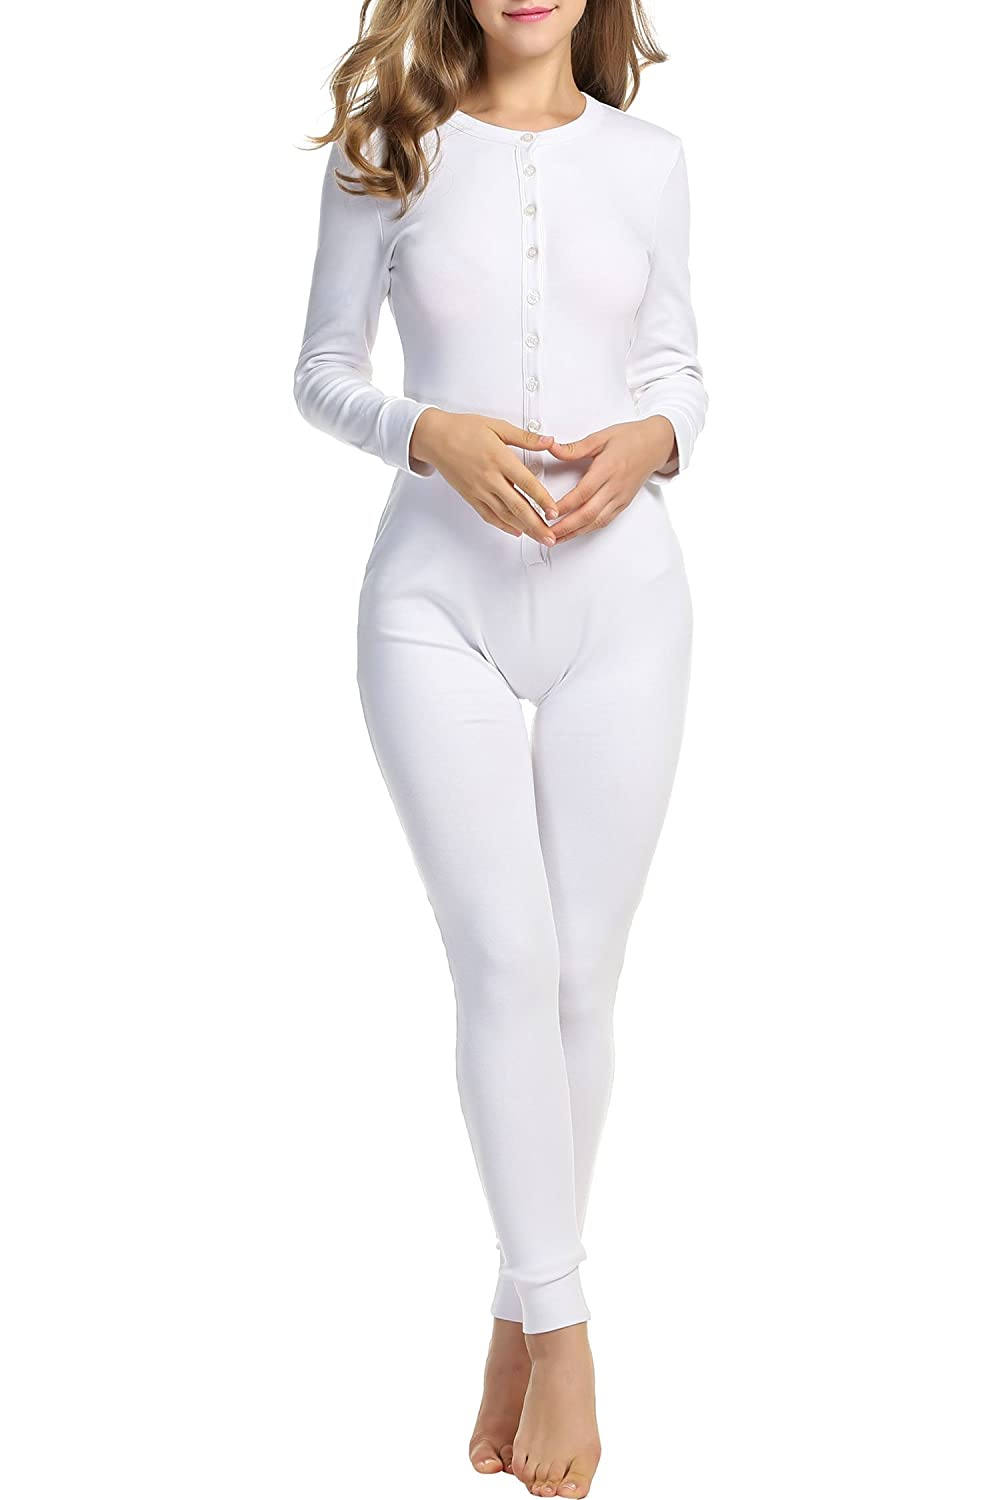 HOTOUCH Women's Thermal Underwear Set Long Johns for Women M-XXL AMK005050